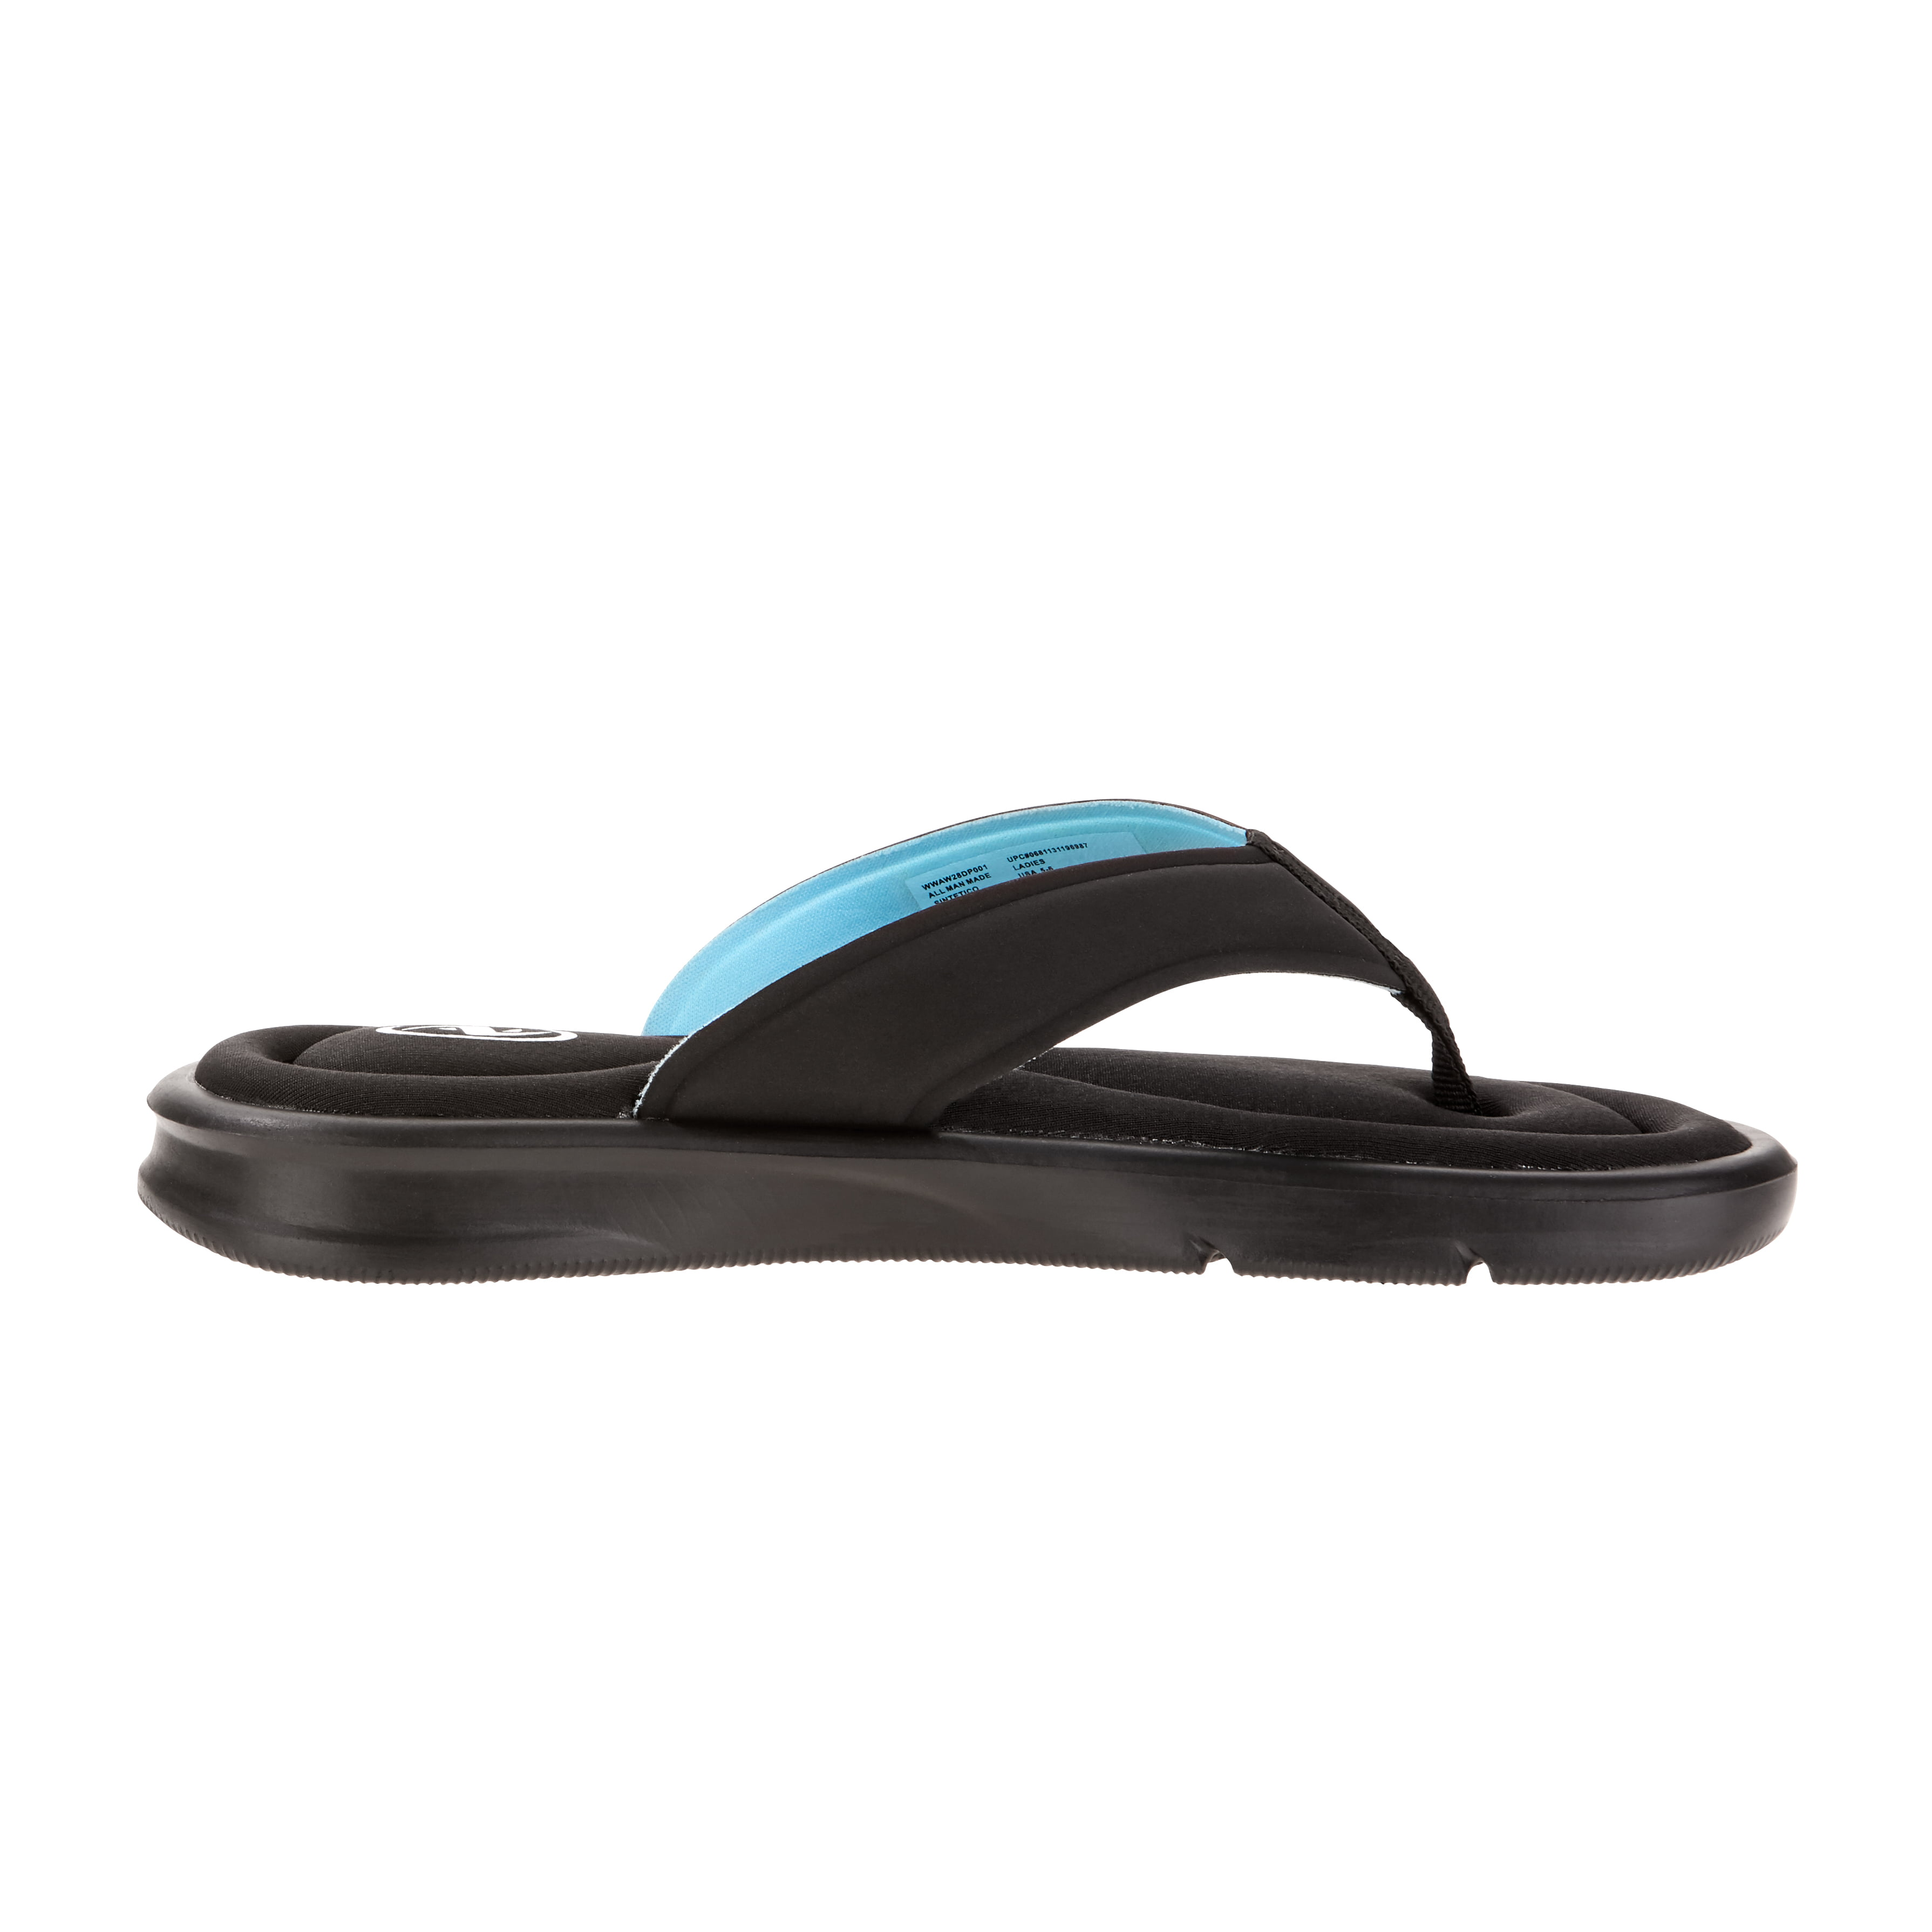 Athletic Works Women/'s Thong Sandal Flip Flop Size 11//12 Gray White Green NEW